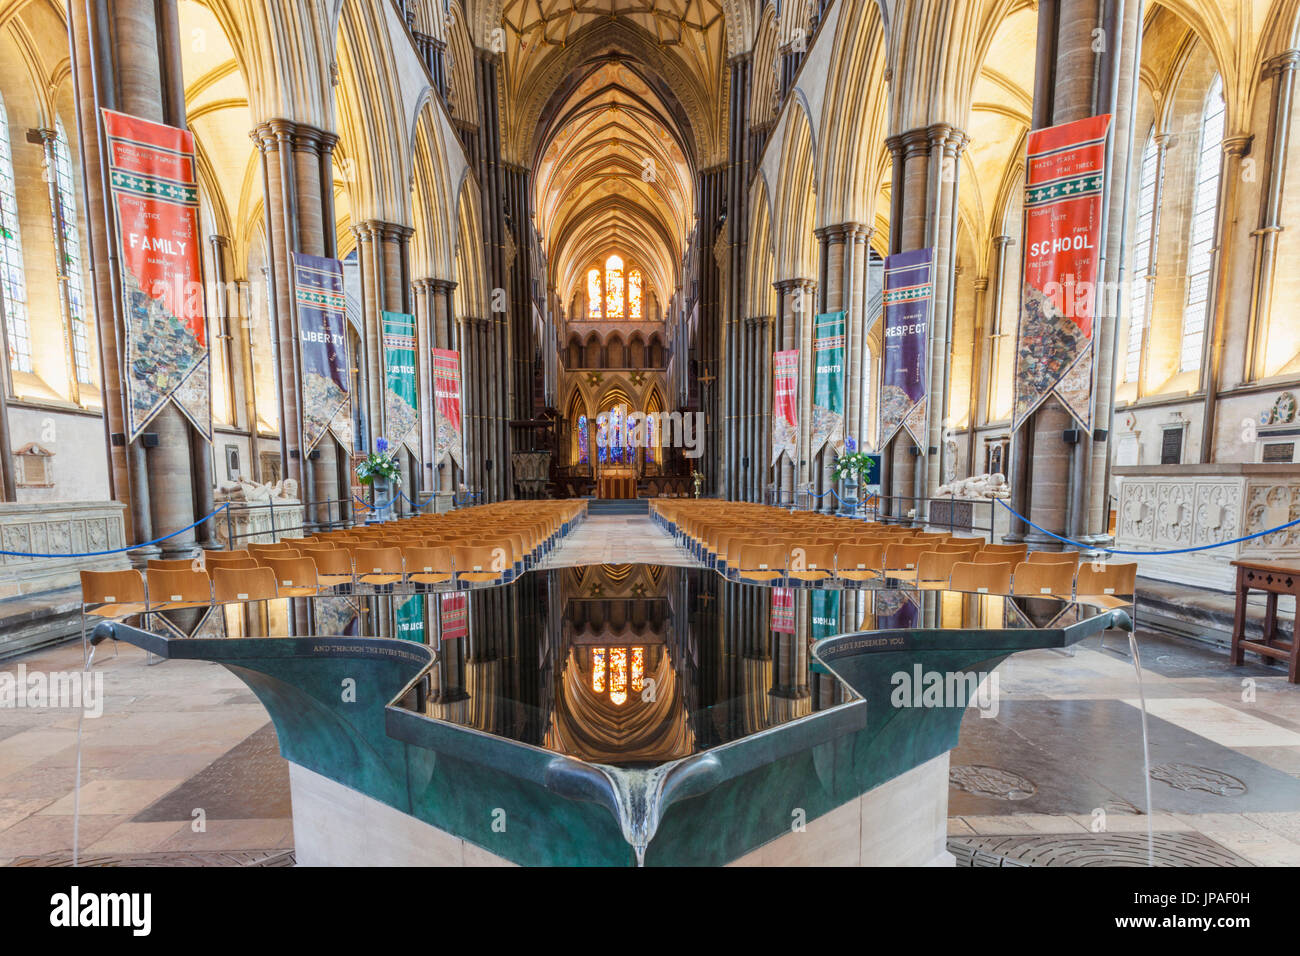 England, Wiltshire, Salisbury, Salisbury Cathedral, The Baptismal Font by William Pye - Stock Image